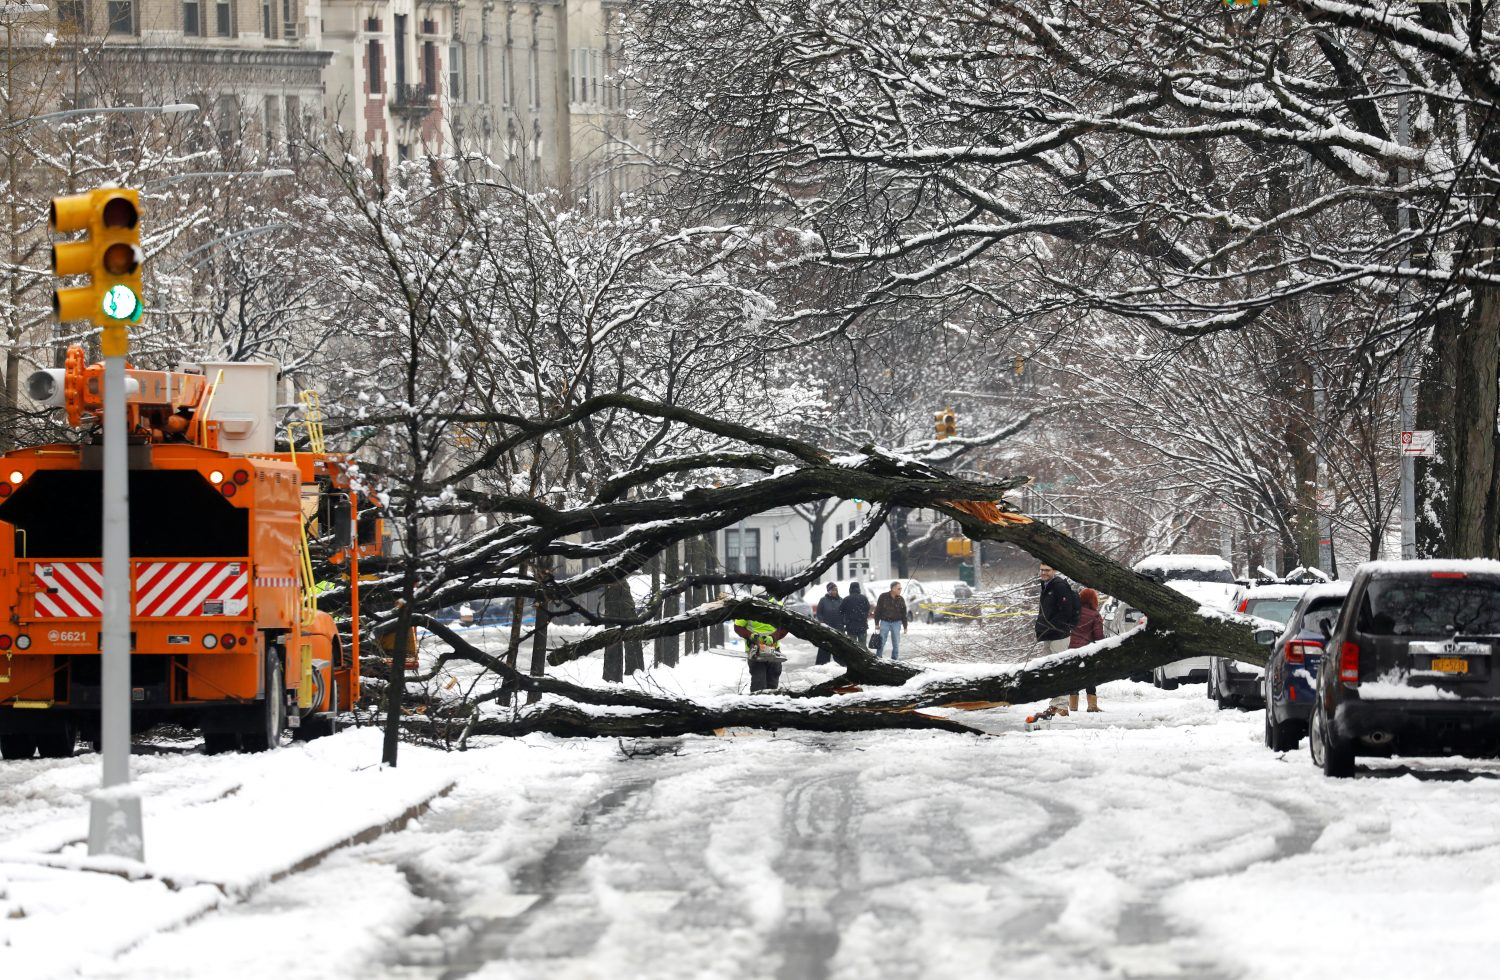 A worker cuts away a tree that fell across Riverside Drive during a snow storm in upper Manhattan in New York City, New York, March 4, 2019. REUTERS/Mike Segar